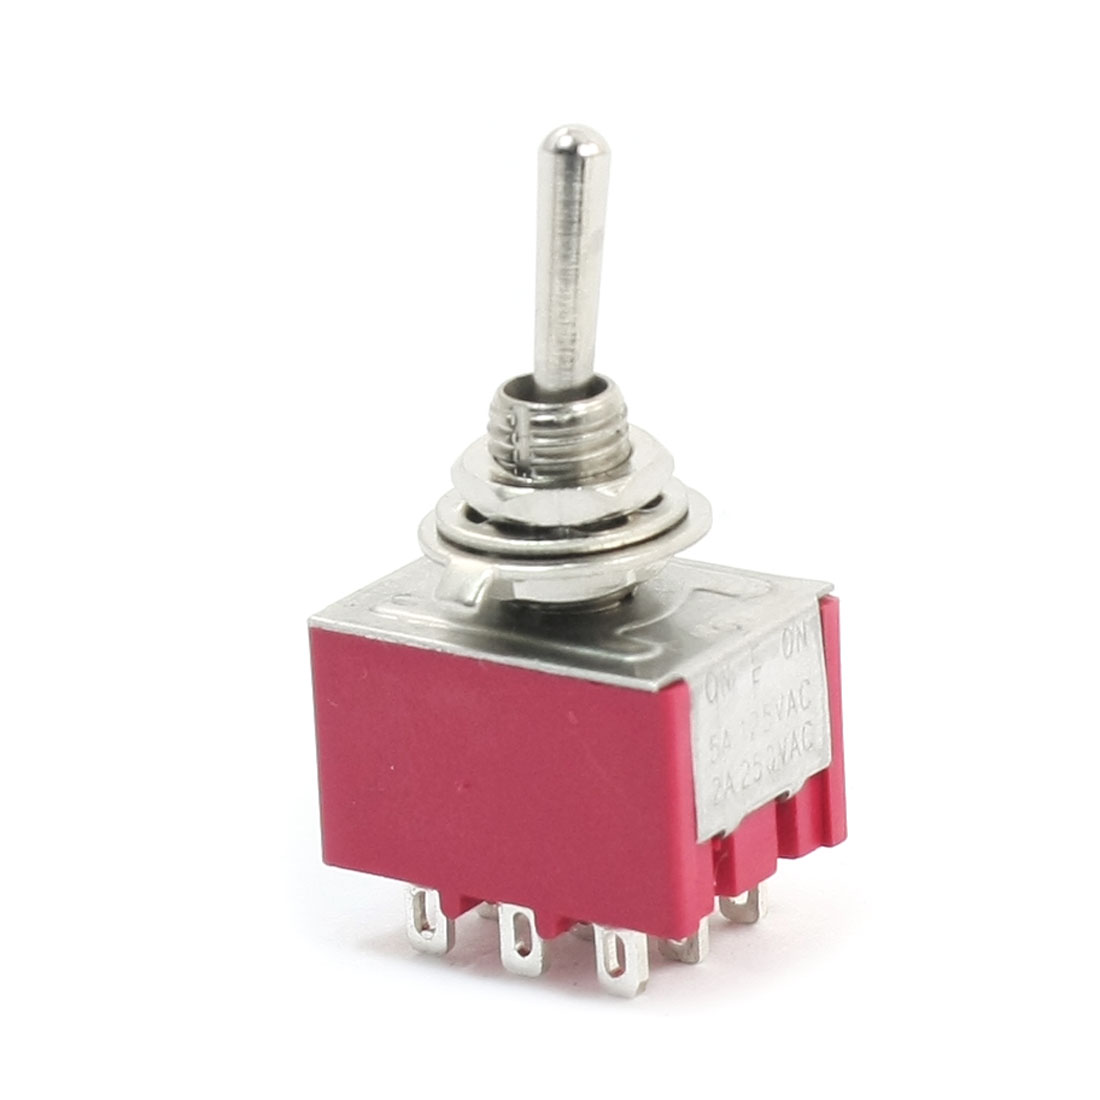 AC125V 5A 250V 2A 3PDT 3 Positions 9Pins Toggle Switch for Auto Motor